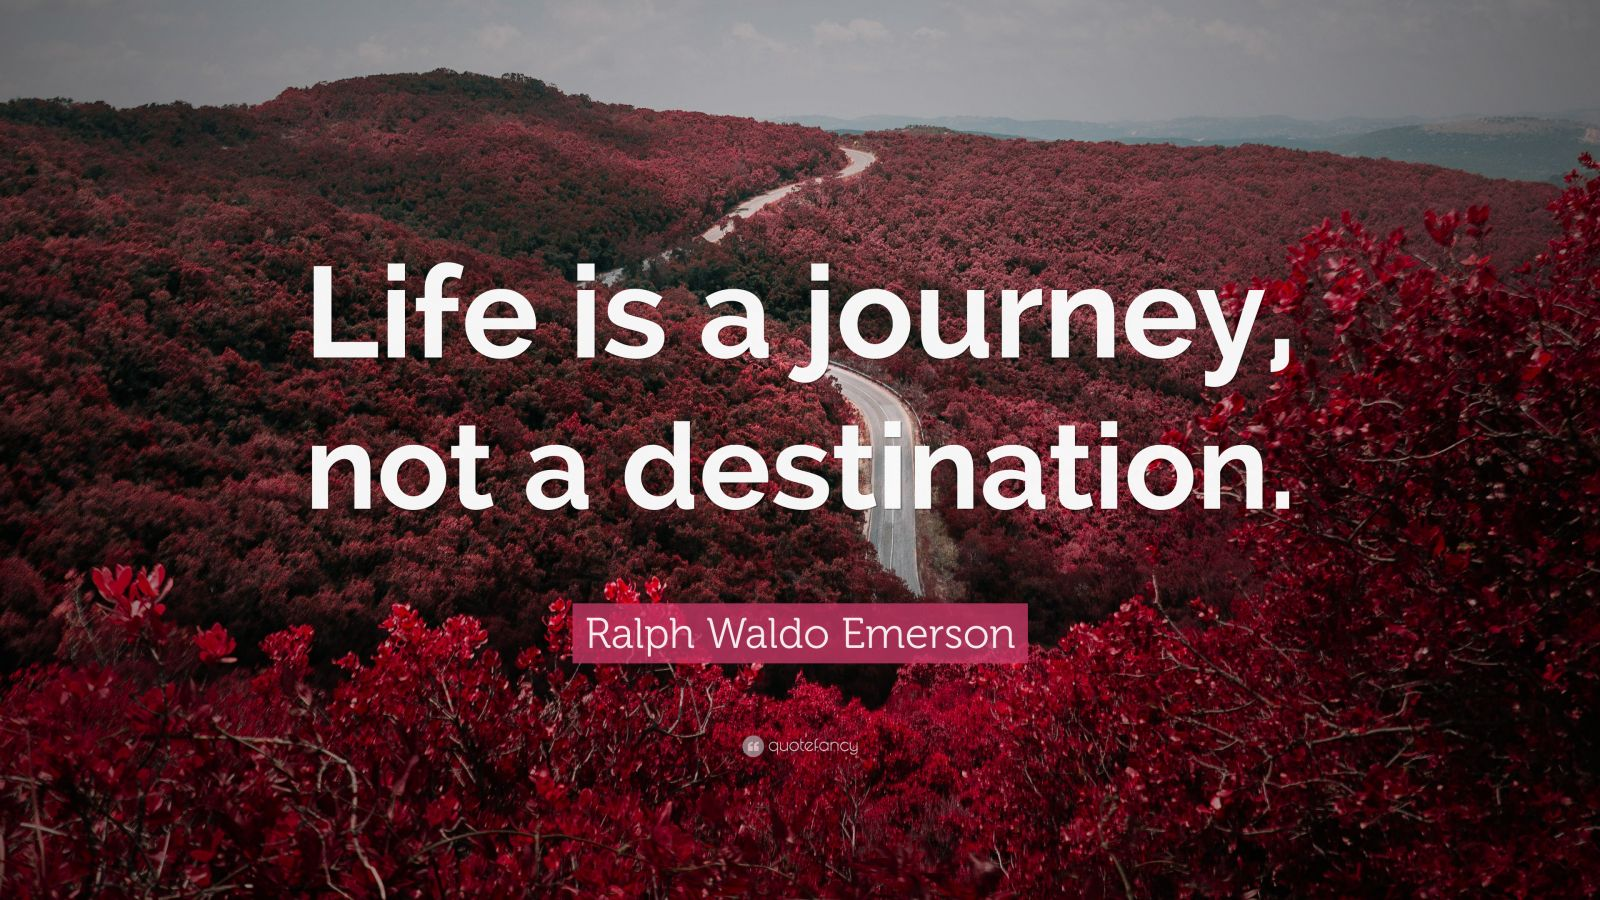 Quotes Life Journey Ralph Waldo Emerson Quotes 100 Wallpapers  Quotefancy